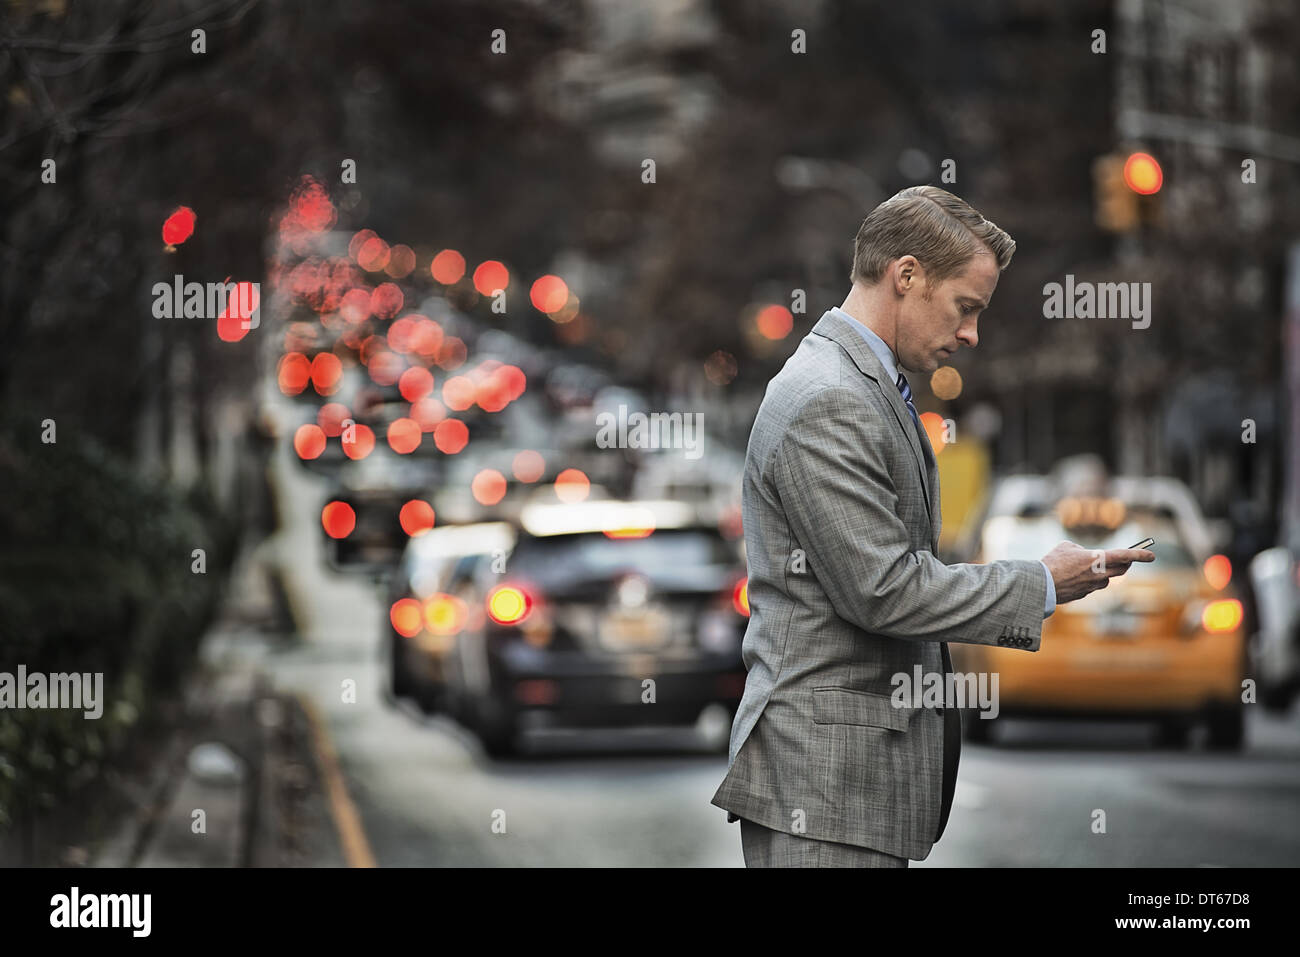 A man in a suit checking his cell phone, standing on a busy street at dusk. - Stock Image